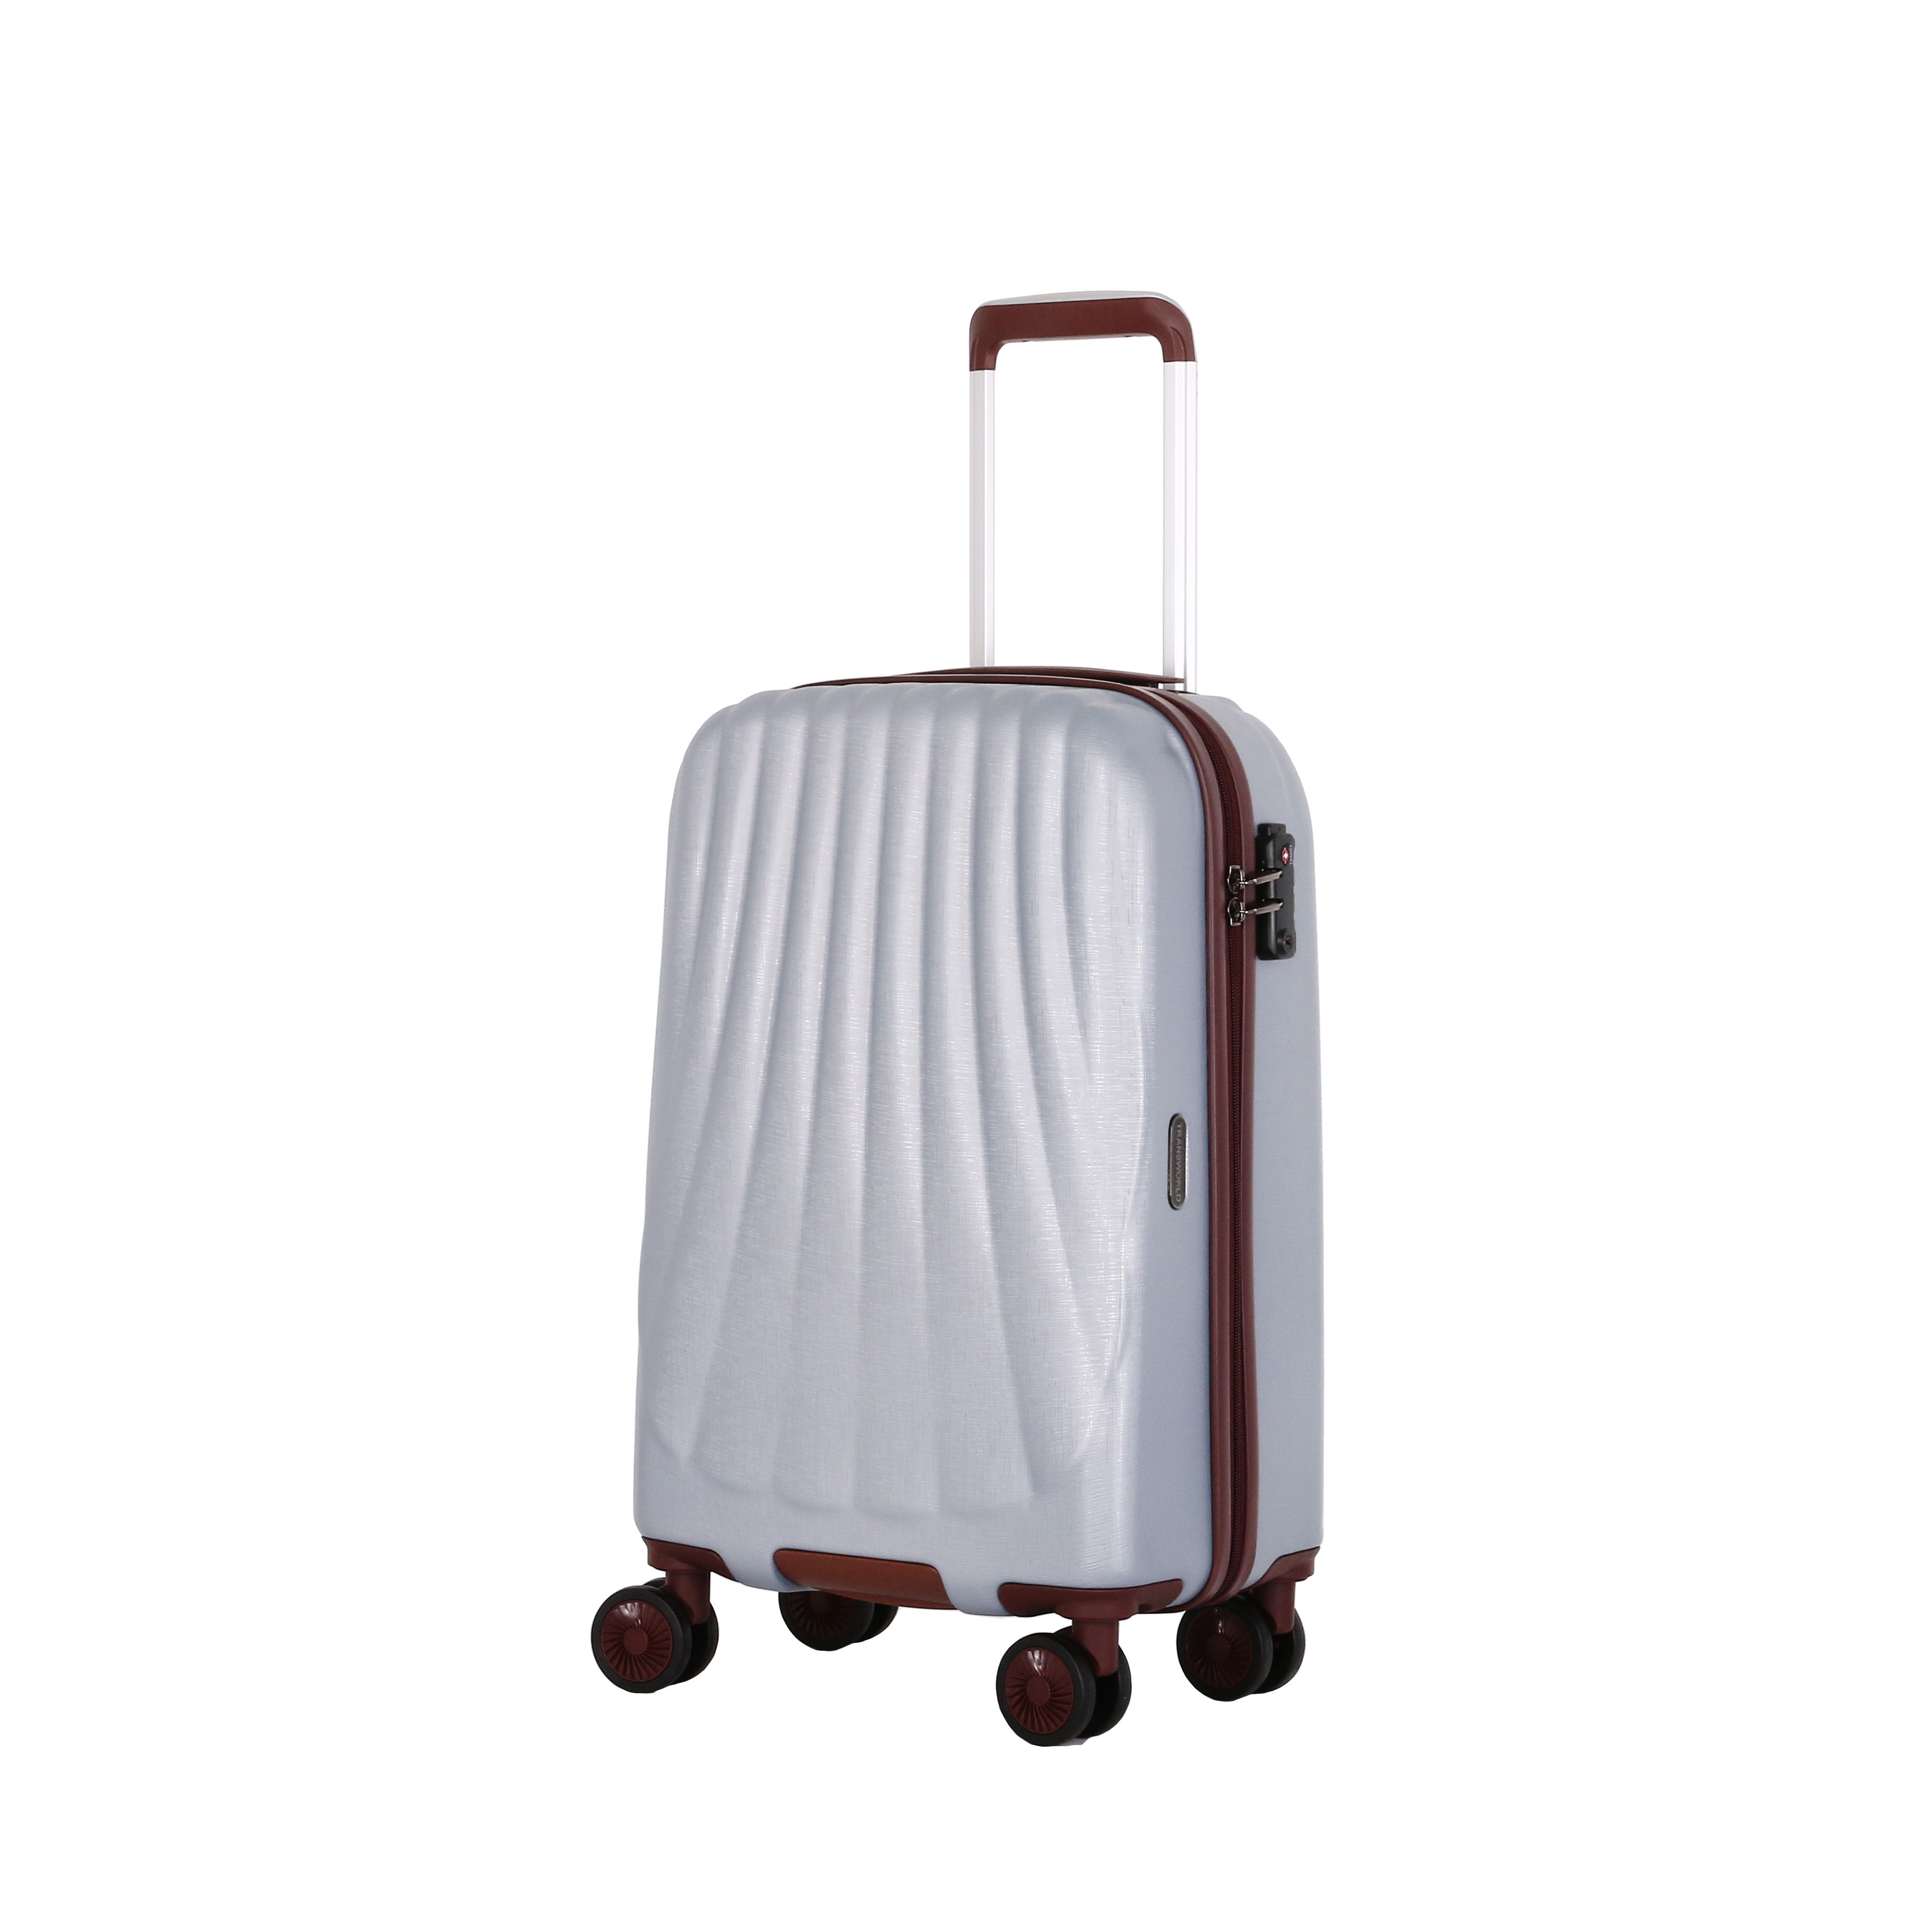 2020 High Quality ABS Trolley Luggage Bag Hard Shell Valise Travel Bag Luggage Set Wholesale